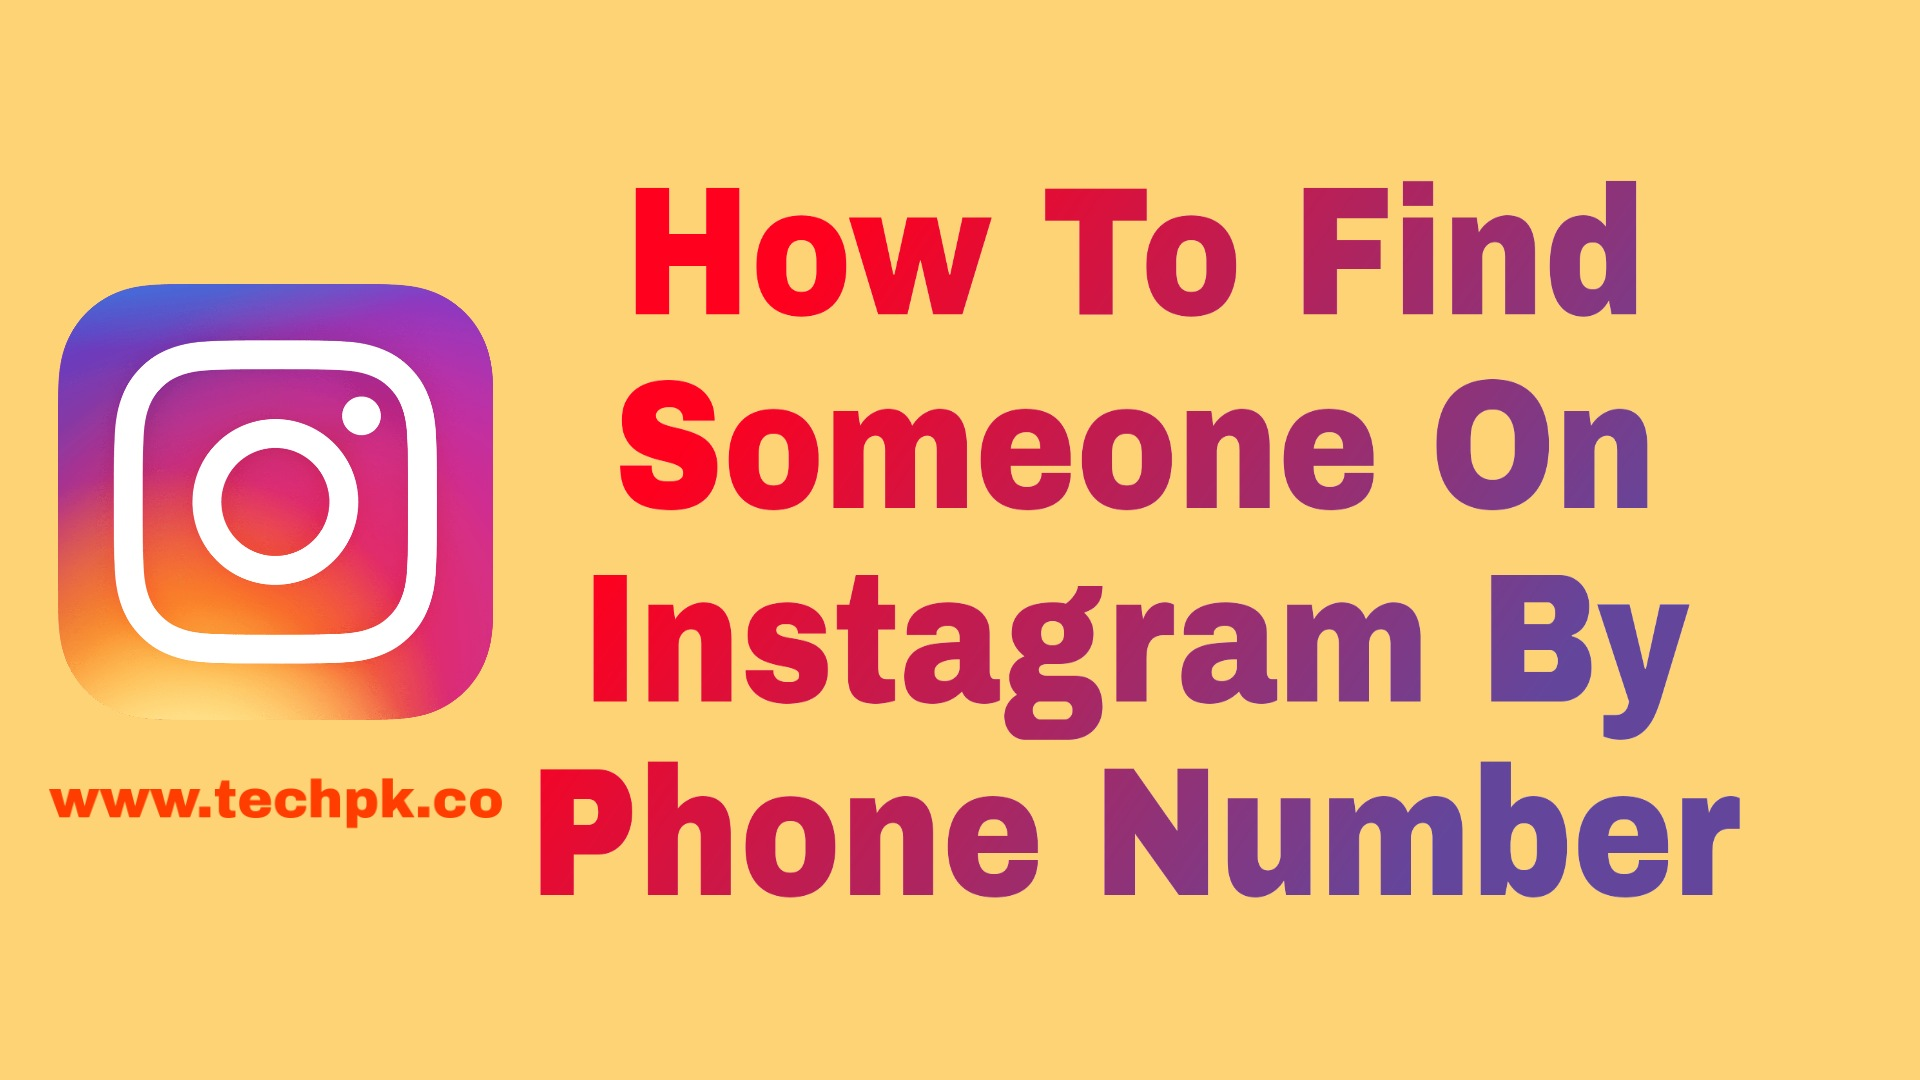 How to find someone on Instagram by phone number 2021